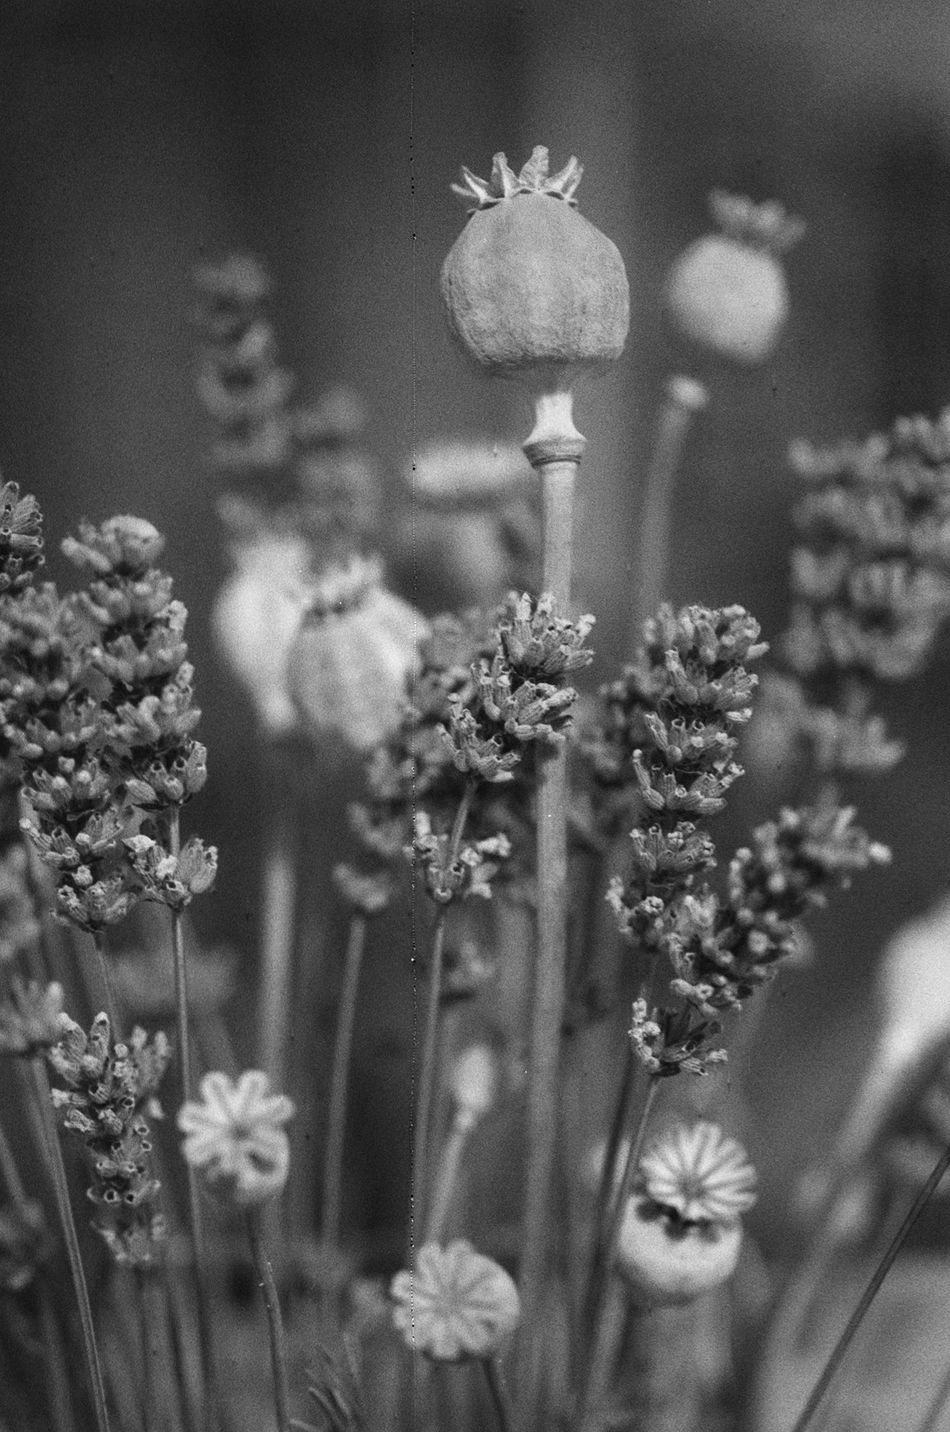 Beauty In Nature Black And White Blackandwhite Blackandwhite Photography Canon EOS 500N Film Is Not Dead Film Photography Filmisnotdead Filmphotography Flower Focus On Foreground Fragility Growth Ishootfilm Lucky Film Nature No People Plant